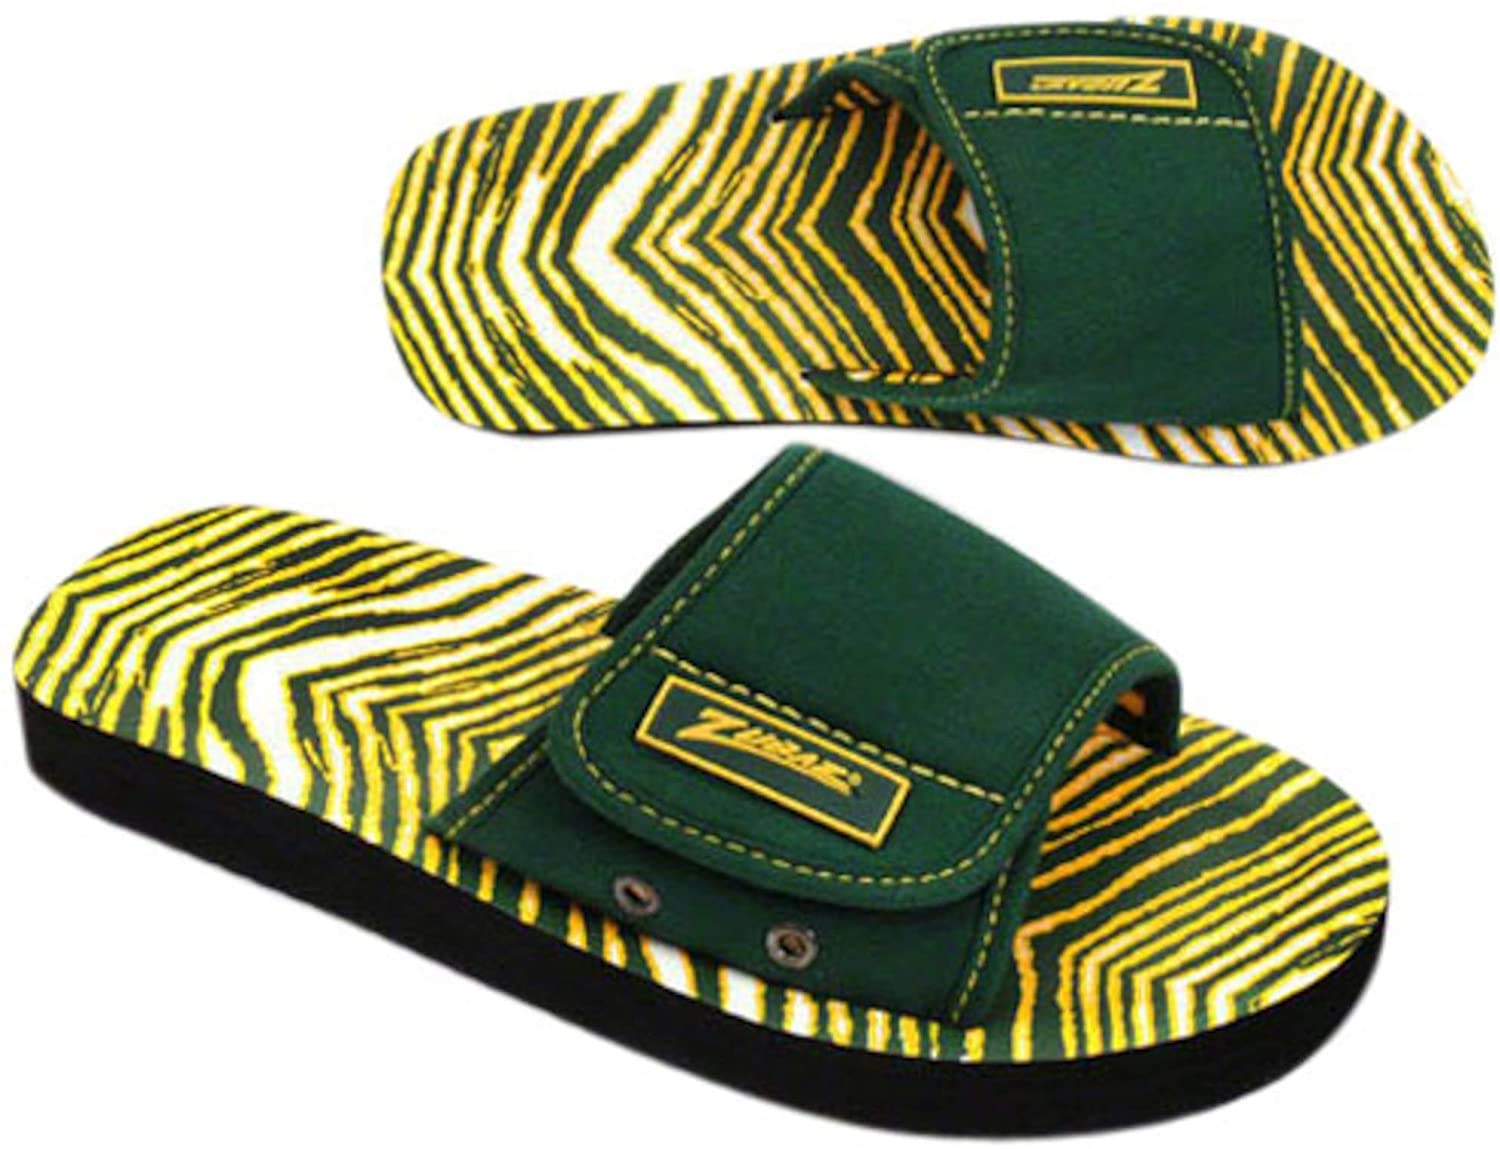 Zubaz Supreme Slide Sandals - (Green/Gold) Medium - Men's 9/10, Women's 11/12